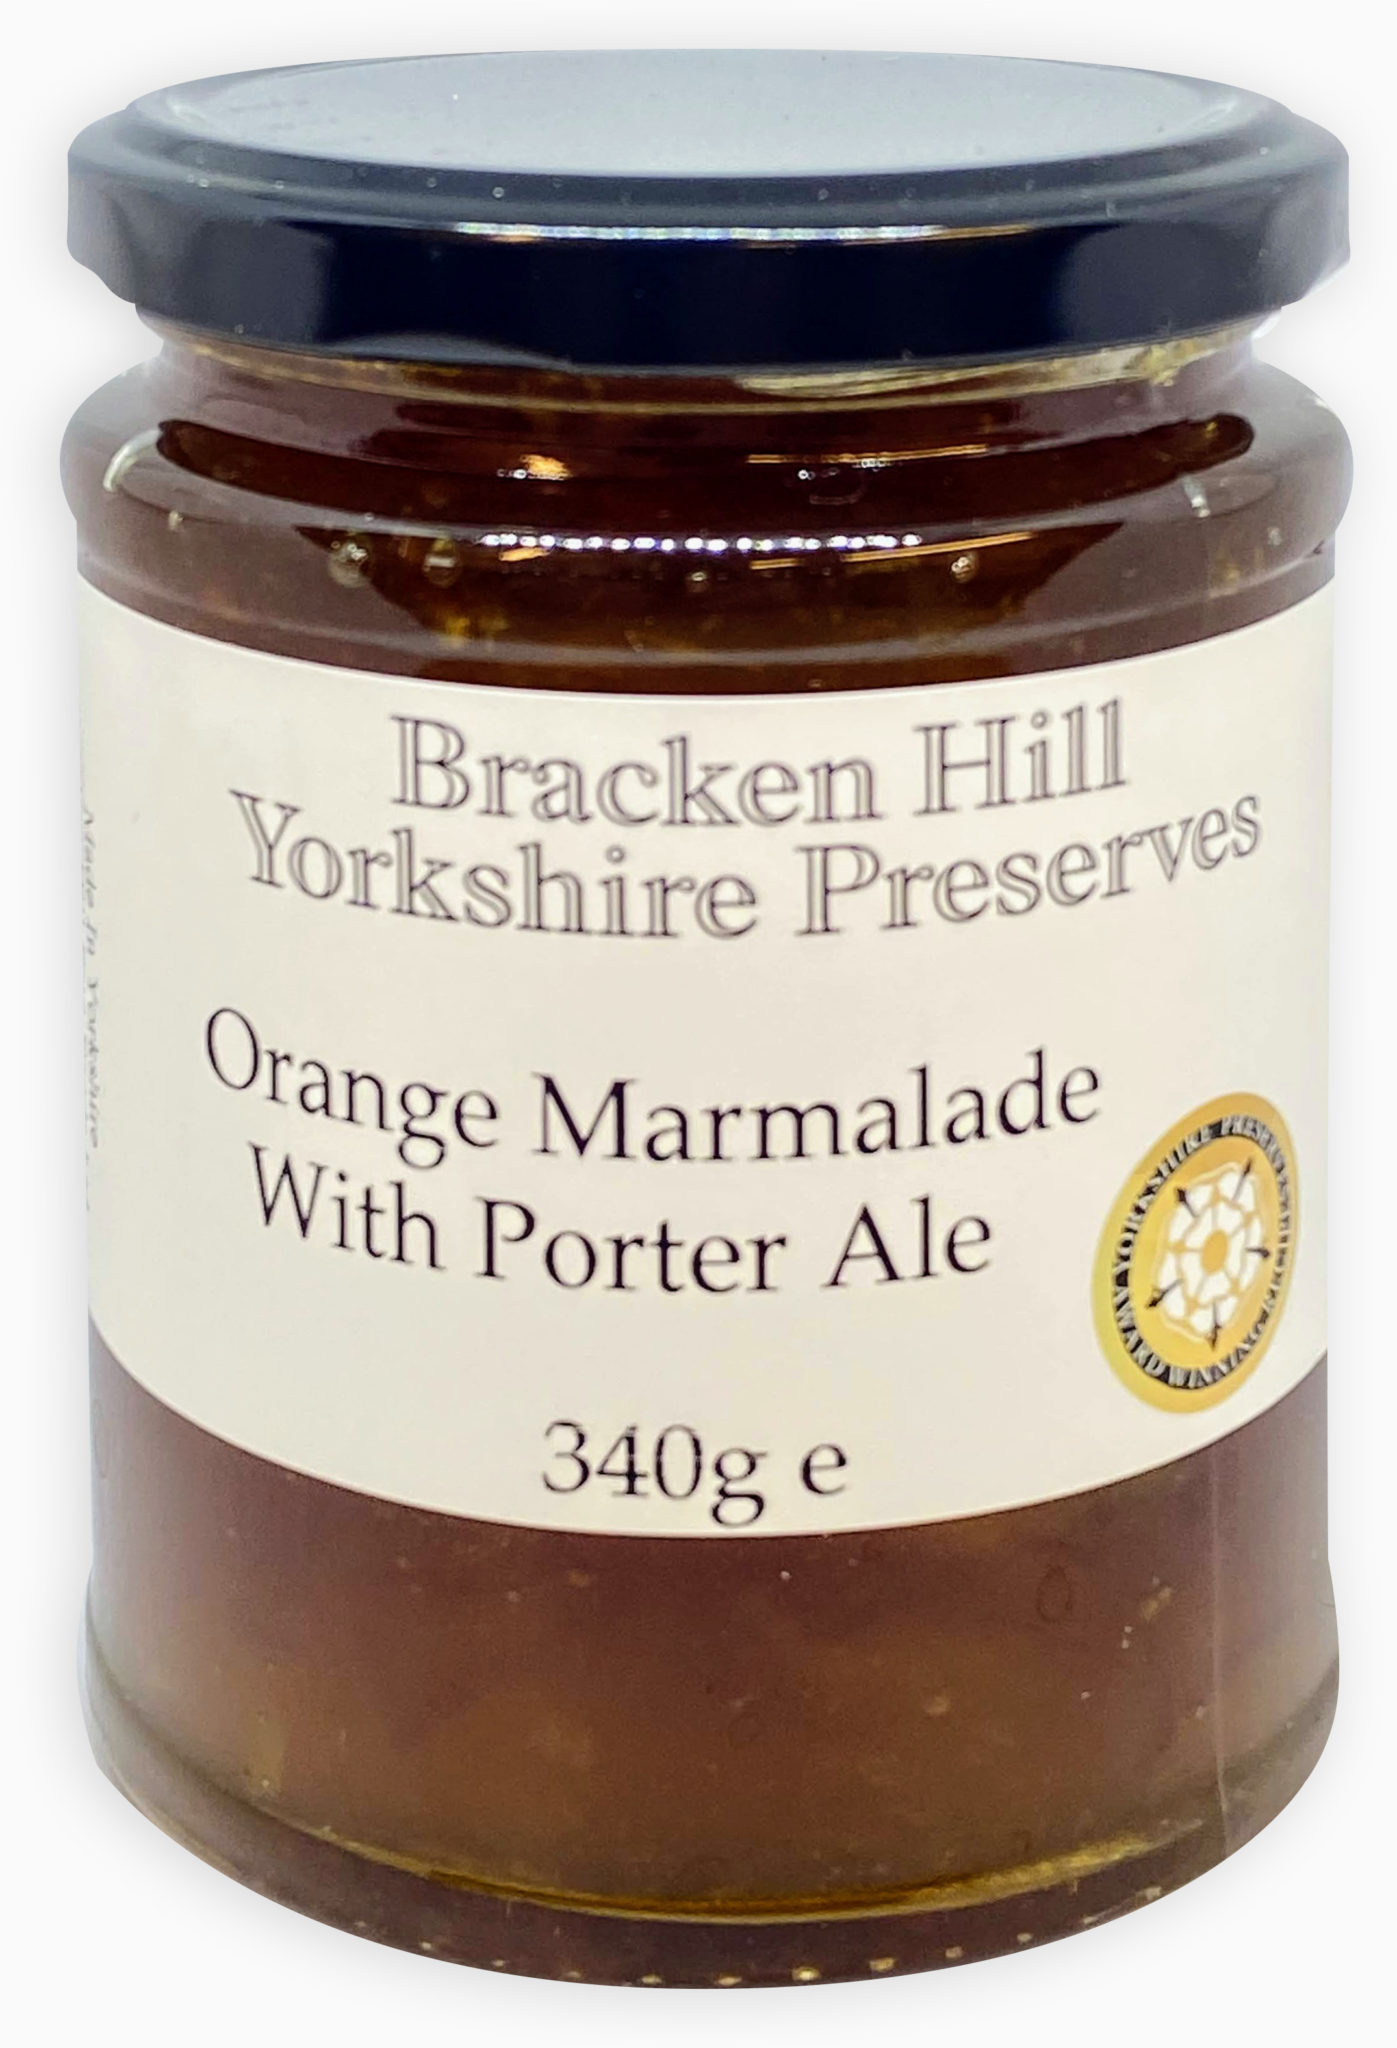 Orange Marmalade with Porter Ale